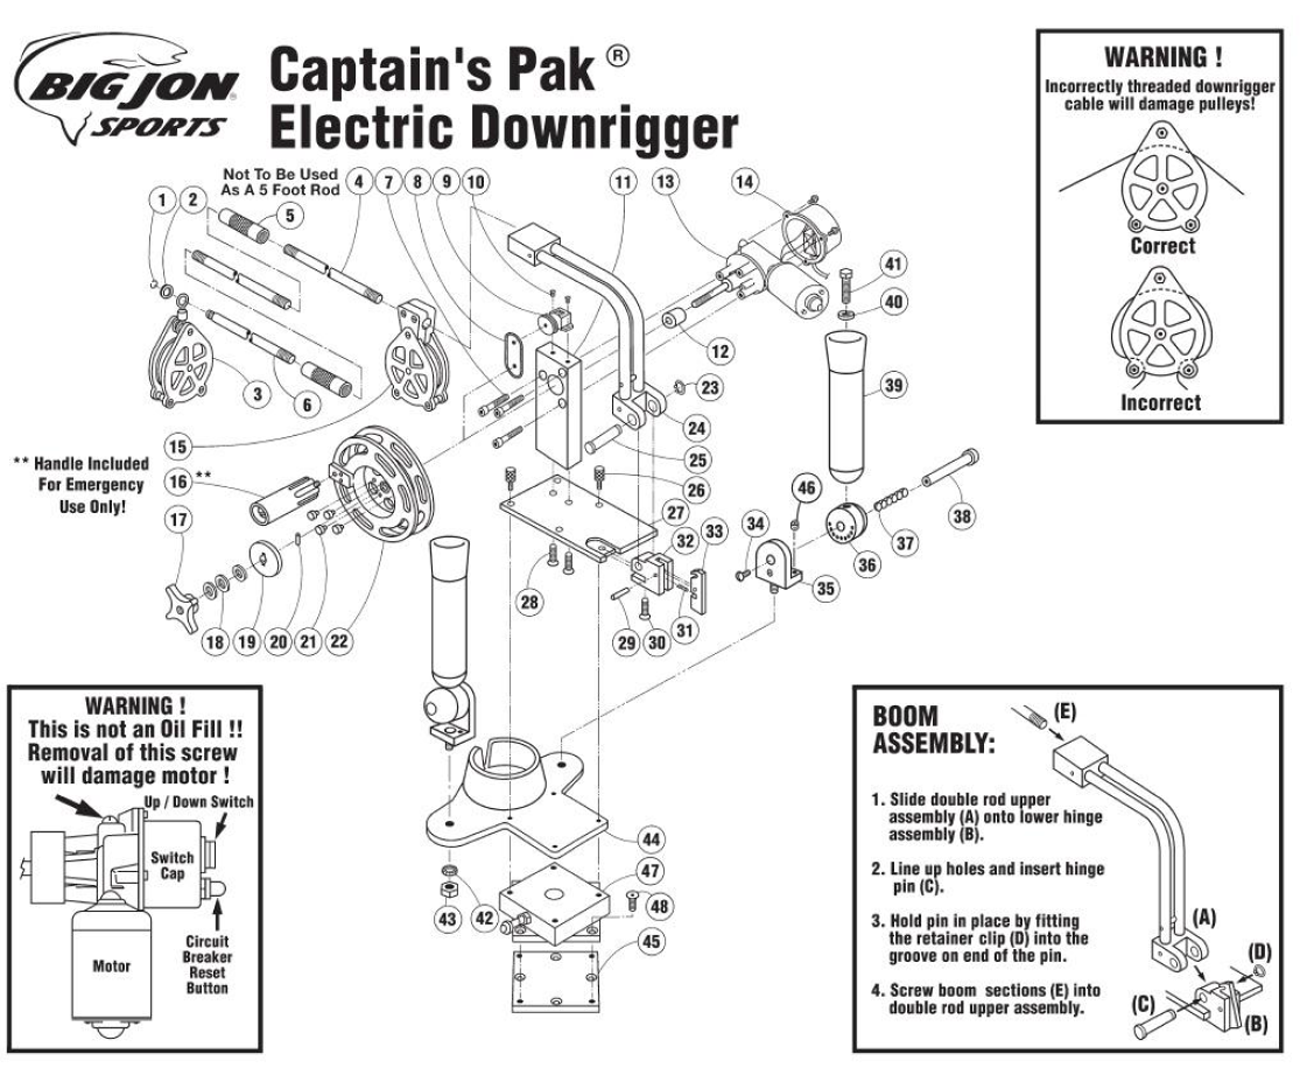 Big Jon Captains Pak Electric Downrigger Parts Motorguide 600 Series Trolling Motor 1998 Up Wire Diagram Expand Product